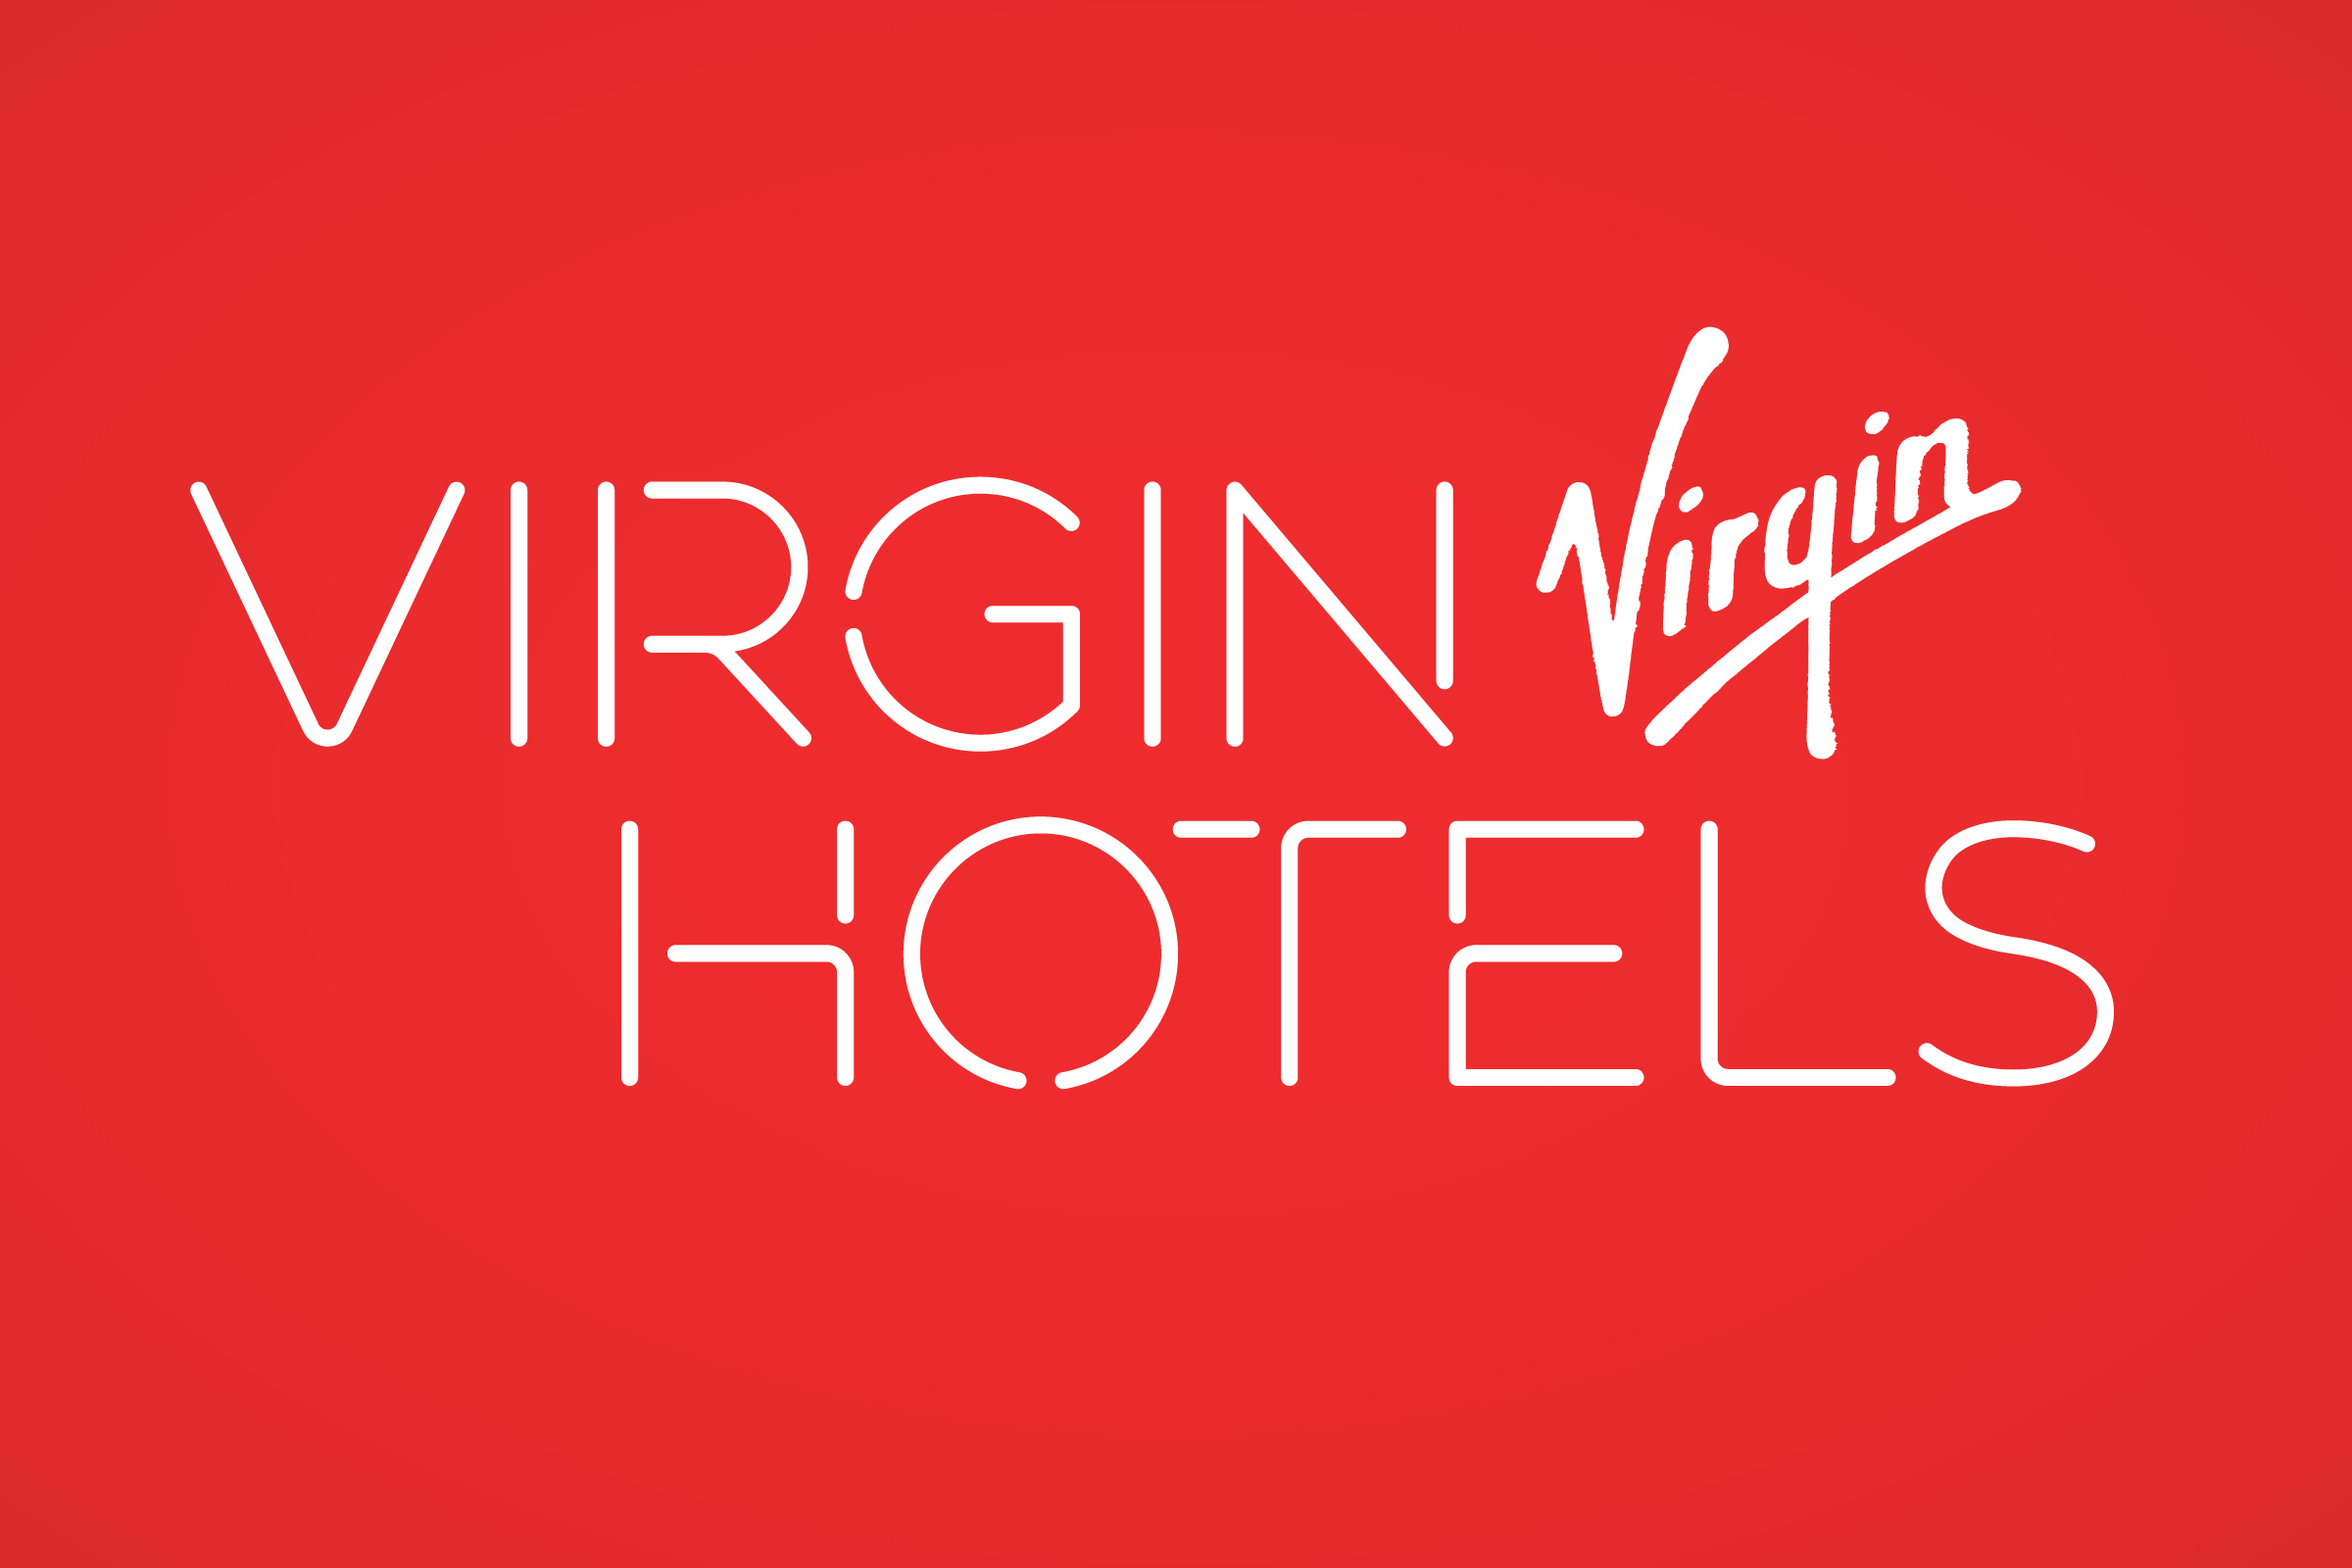 Virgin Hotels - Virgin